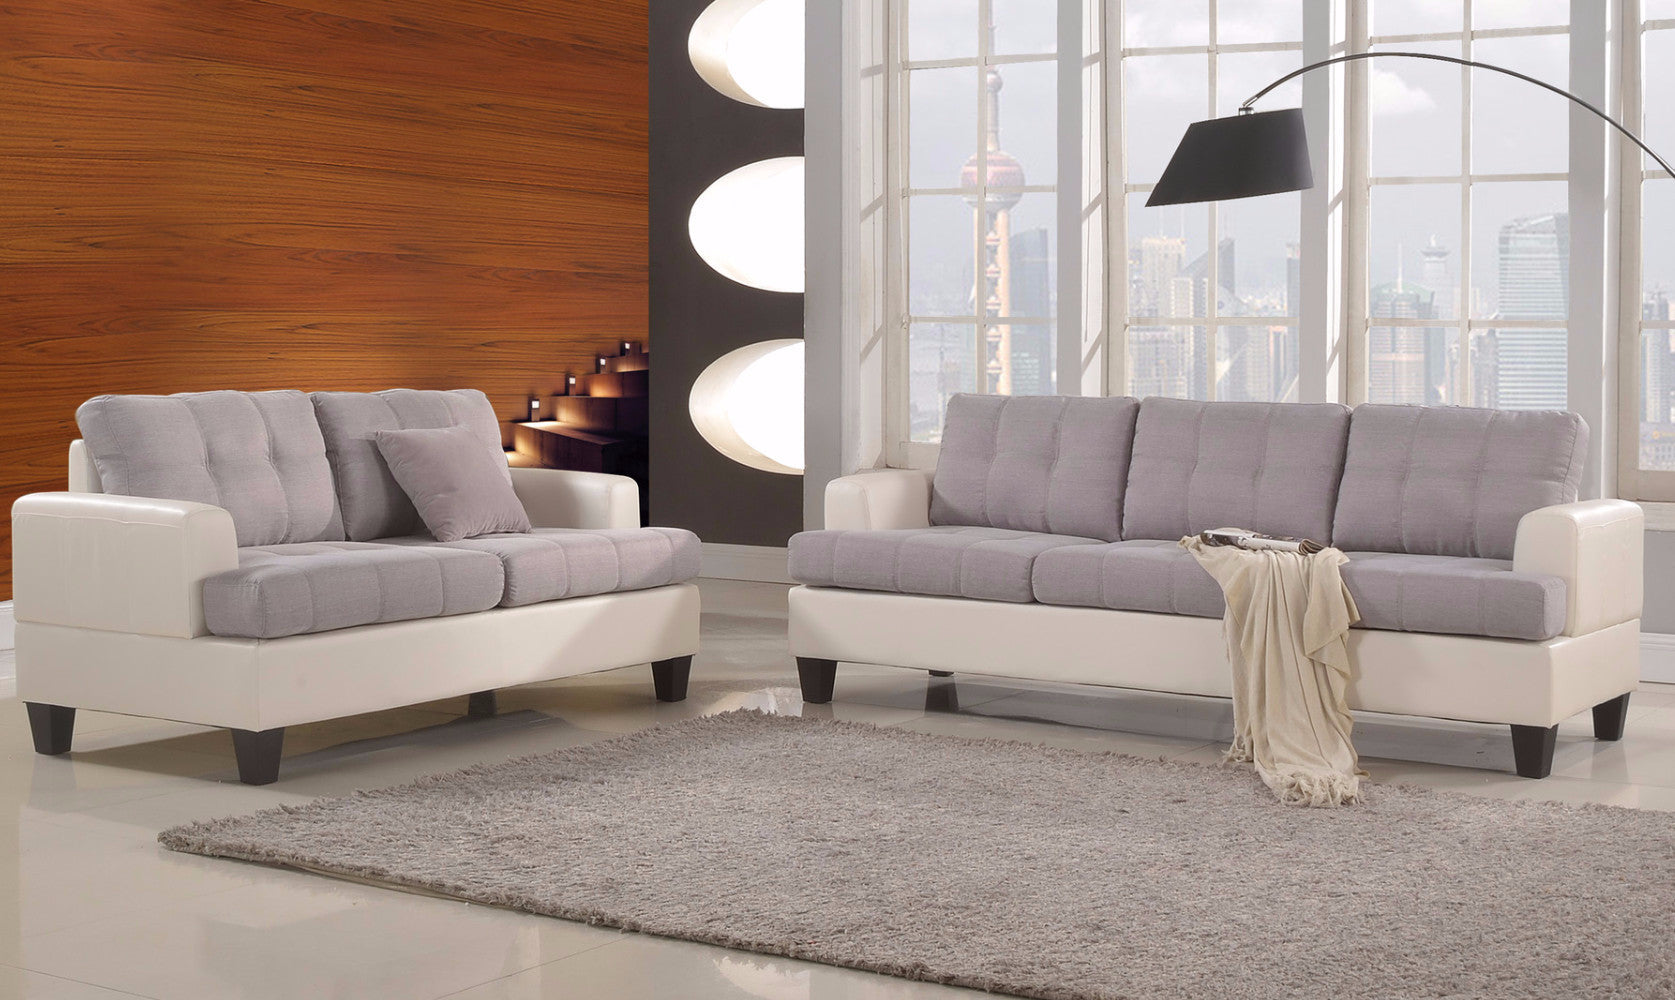 Laura S Modern Microfiber Livingroom Set With Grey Seating ... Part 67